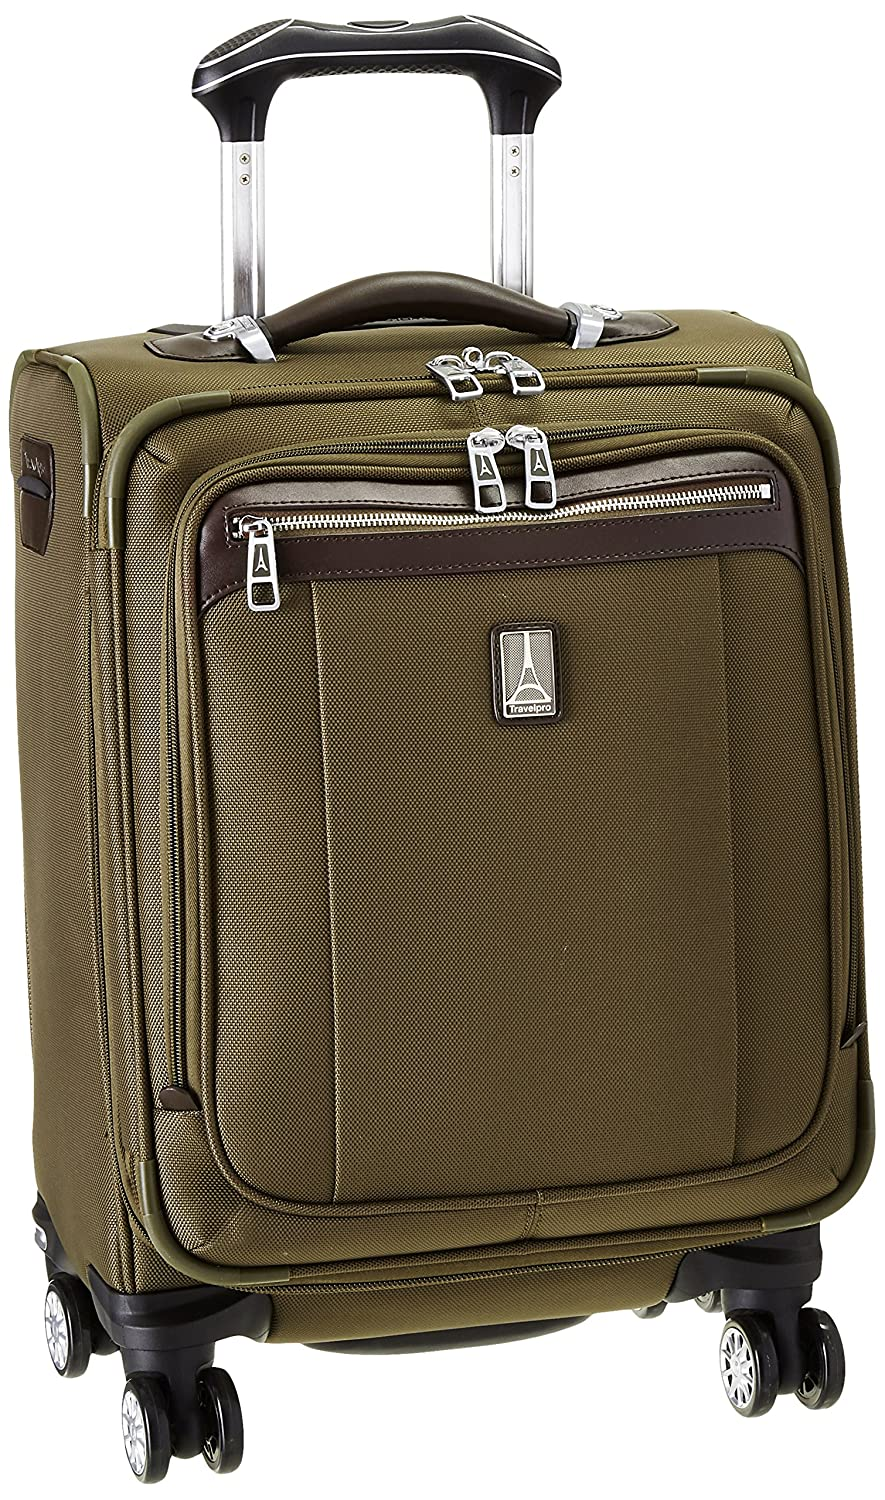 Travelpro Platinum Magna 2 International Carry On Expandable Spinner Carry On Suitcase, 20 In., Olive by Travelpro